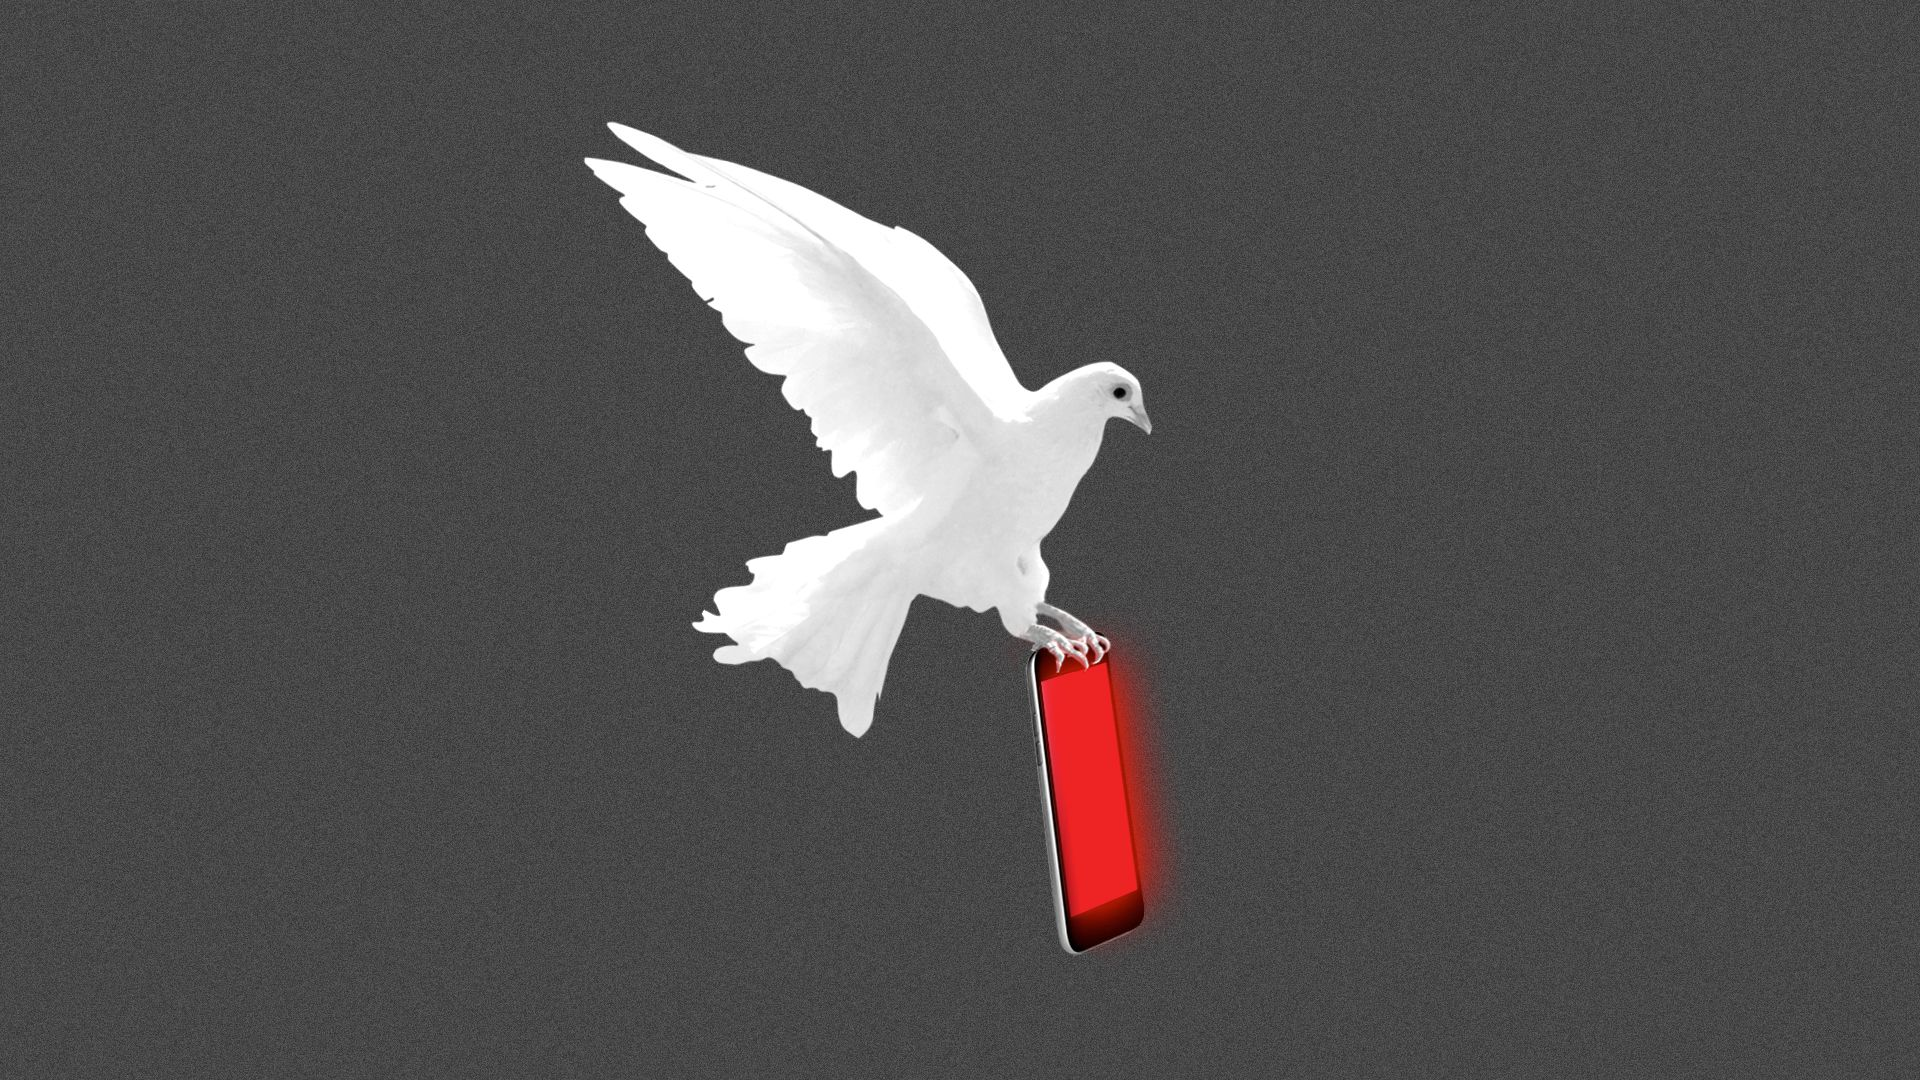 Illustration of a dove carrying a mobile phone glowing menacingly.